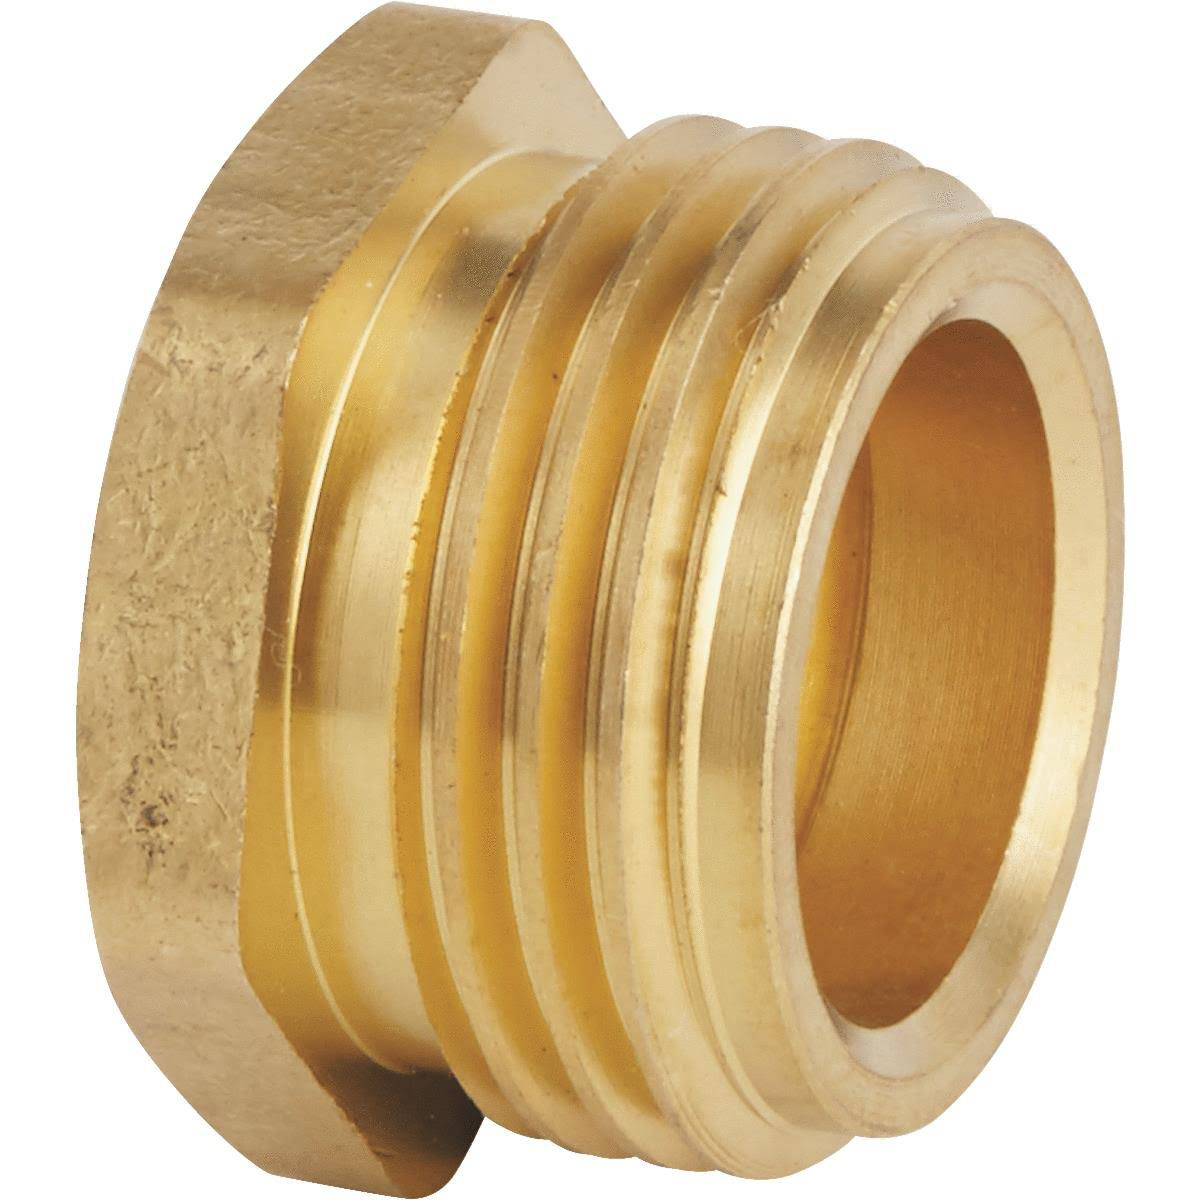 Fiskars Watering Connector - Brass